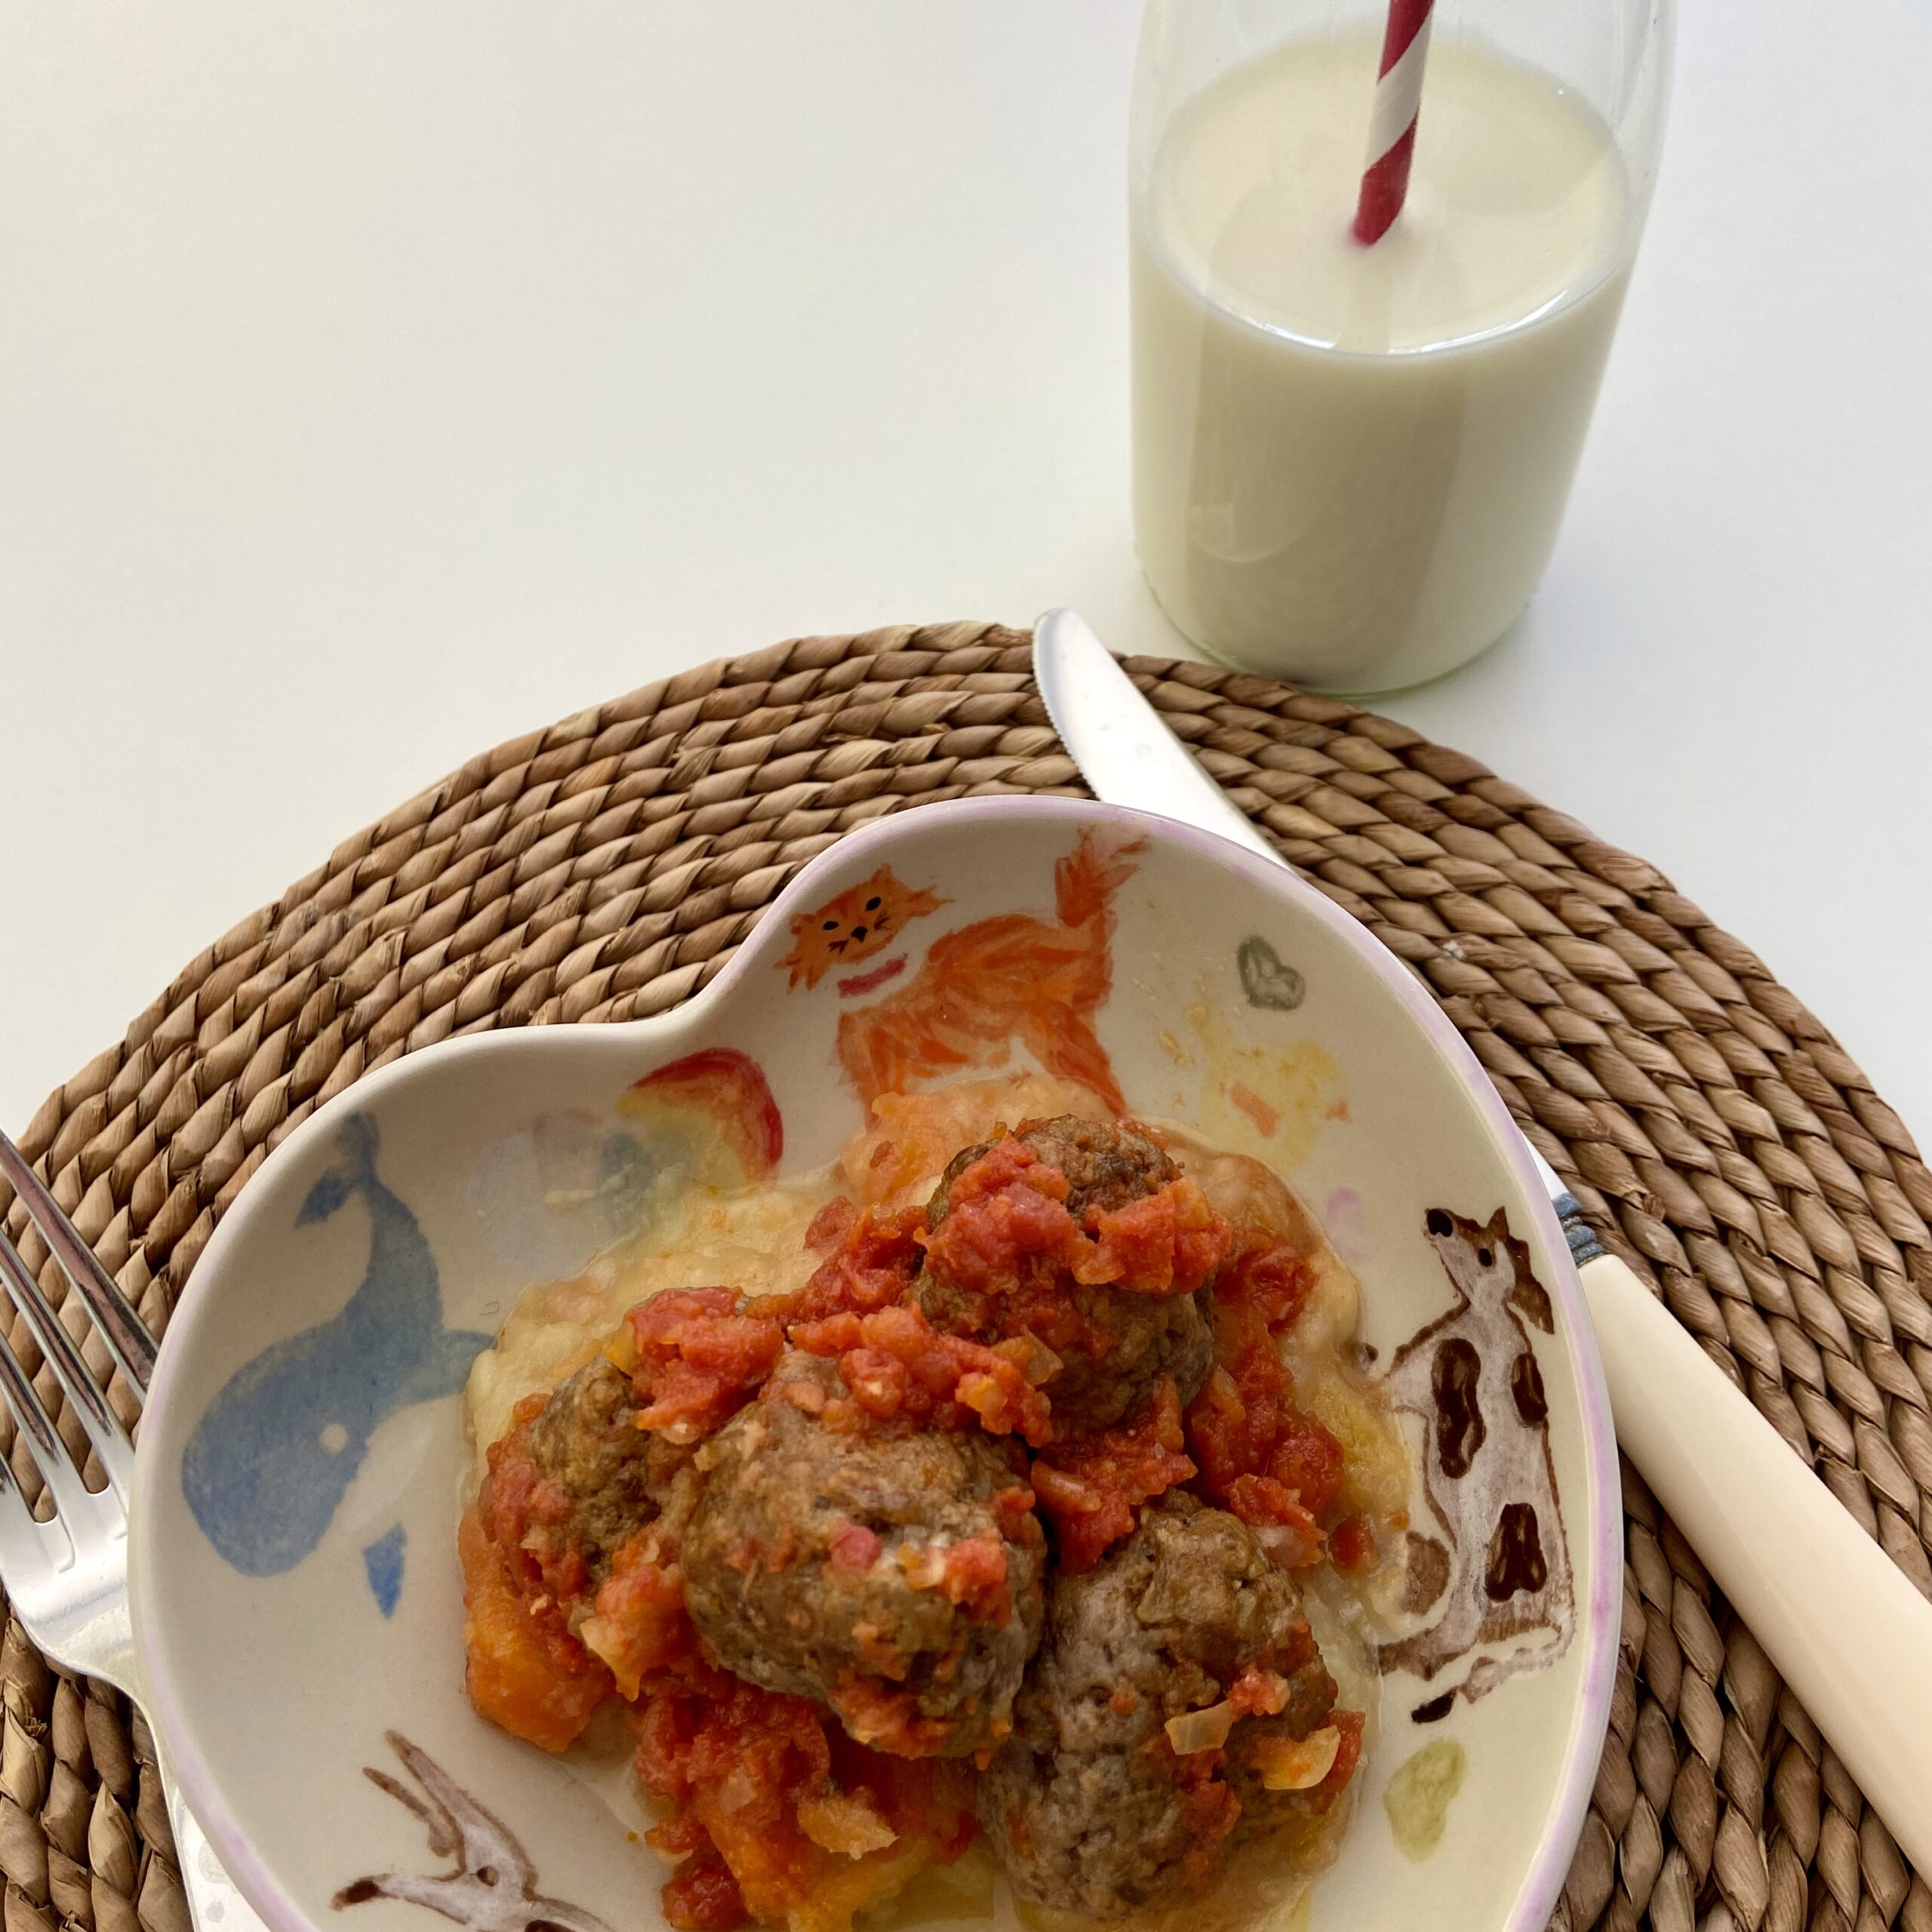 Ground Beef & Mushroom Meat Balls